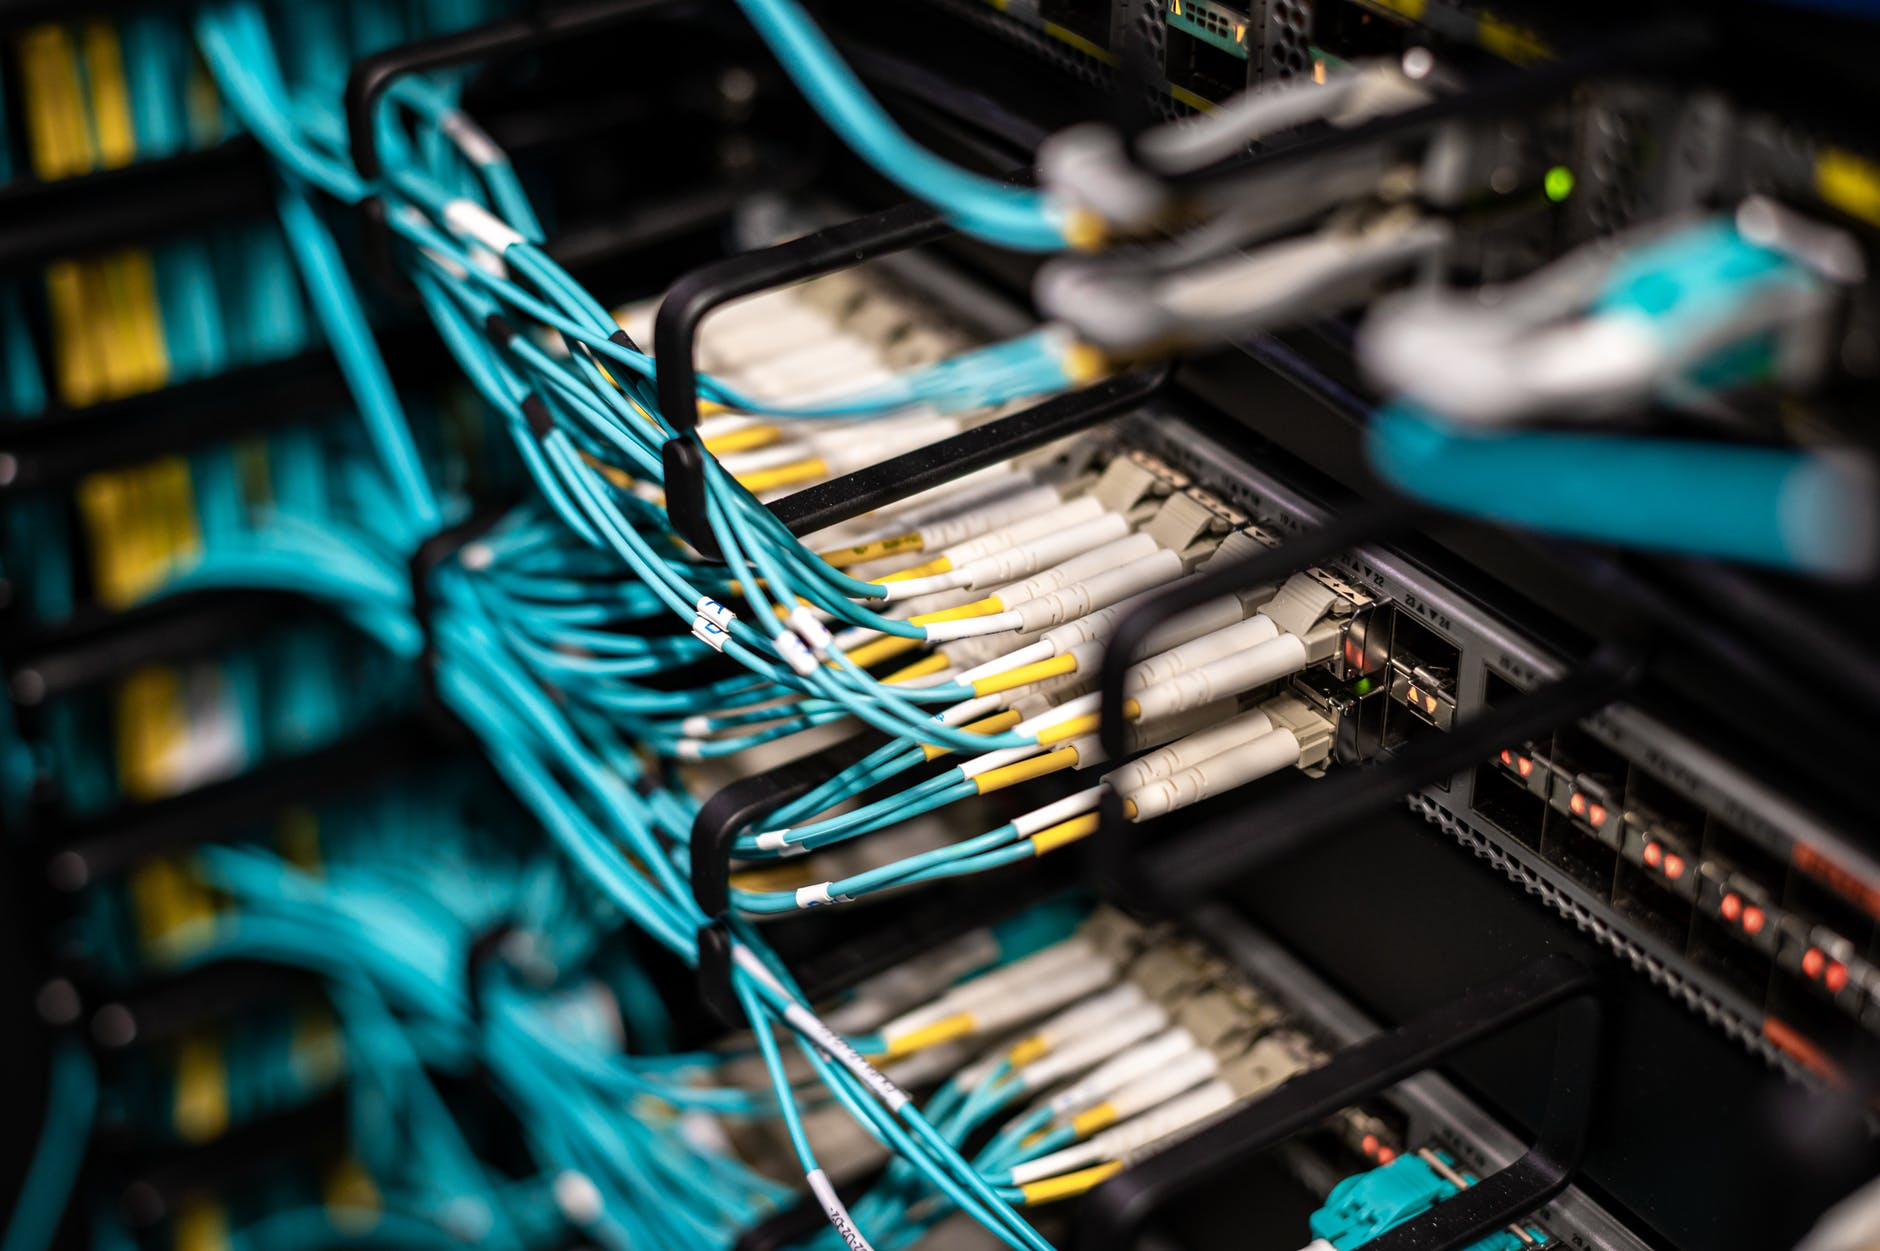 many cables plugged into patch panel